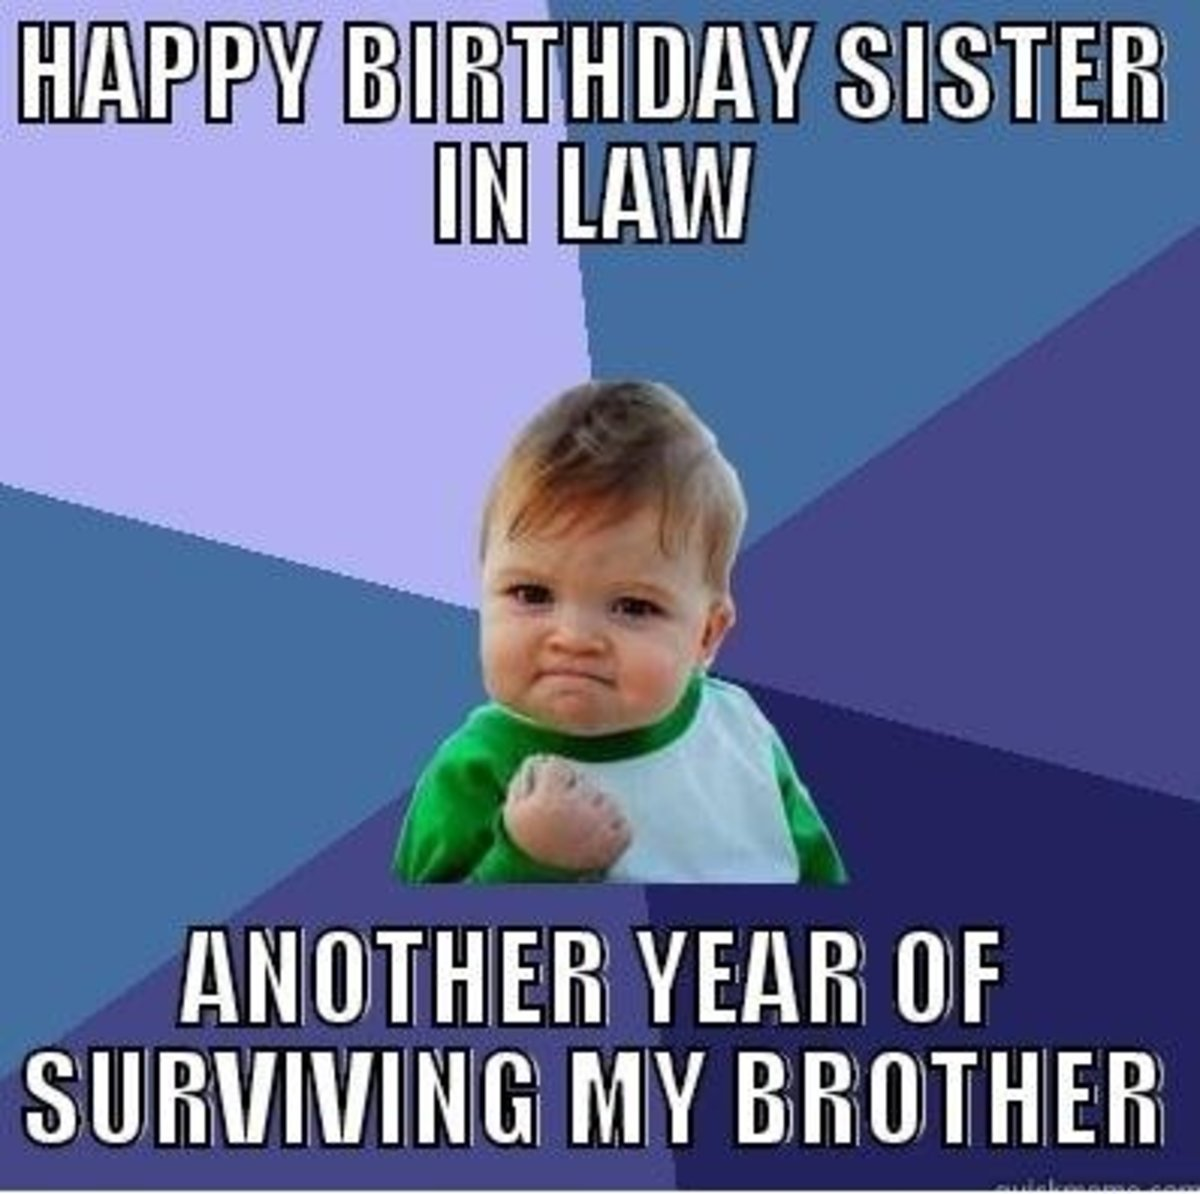 Happy Birthday Sister in Law Quotes and Meme | HubPages